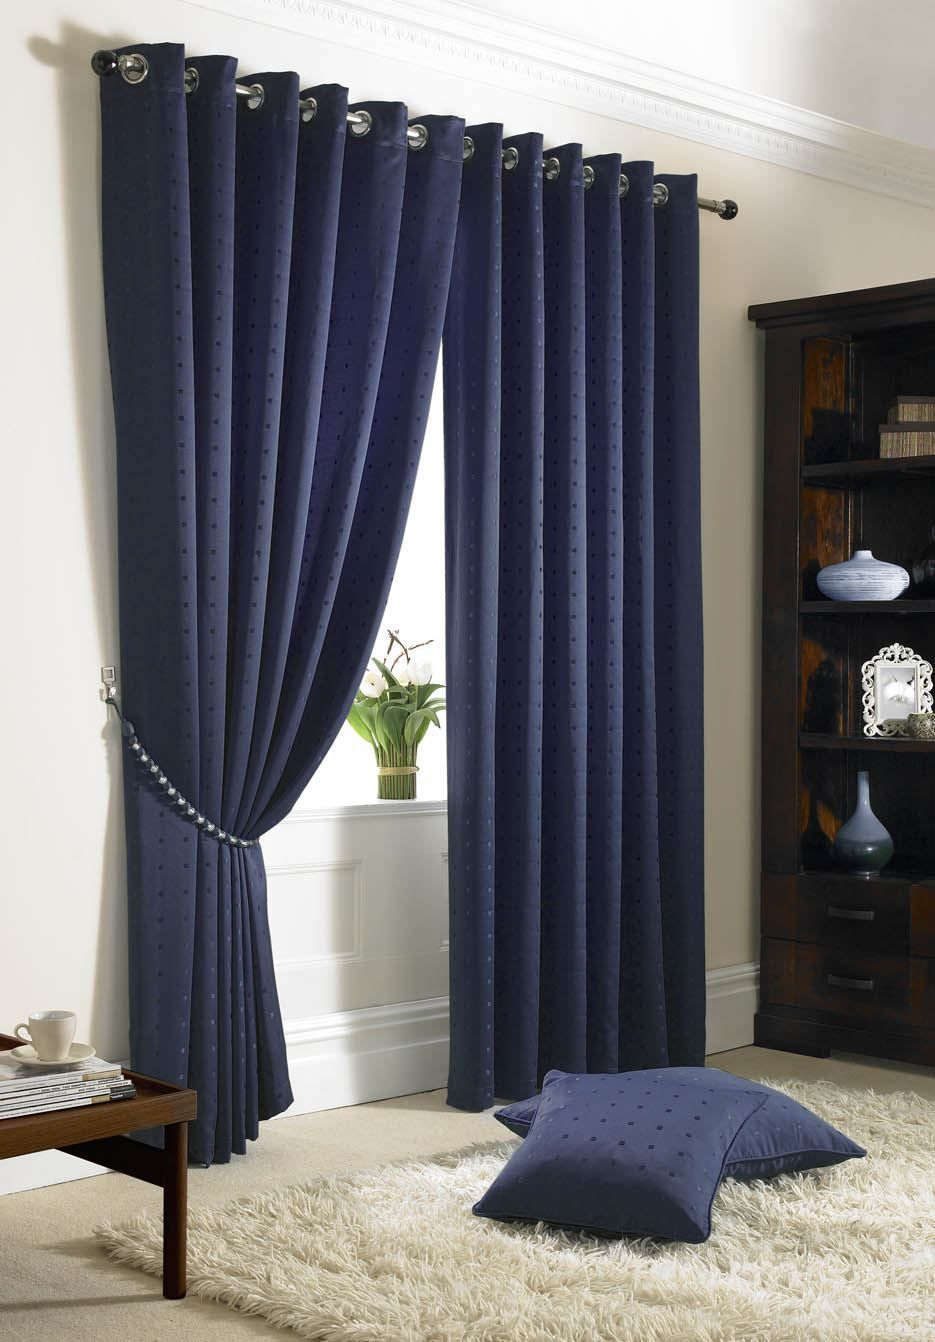 Curtain Curtains Valances Ebay Home Furniture Diy Blue Curtains Bedroom Dark Blue Curtains Blue Curtains For Bedroom